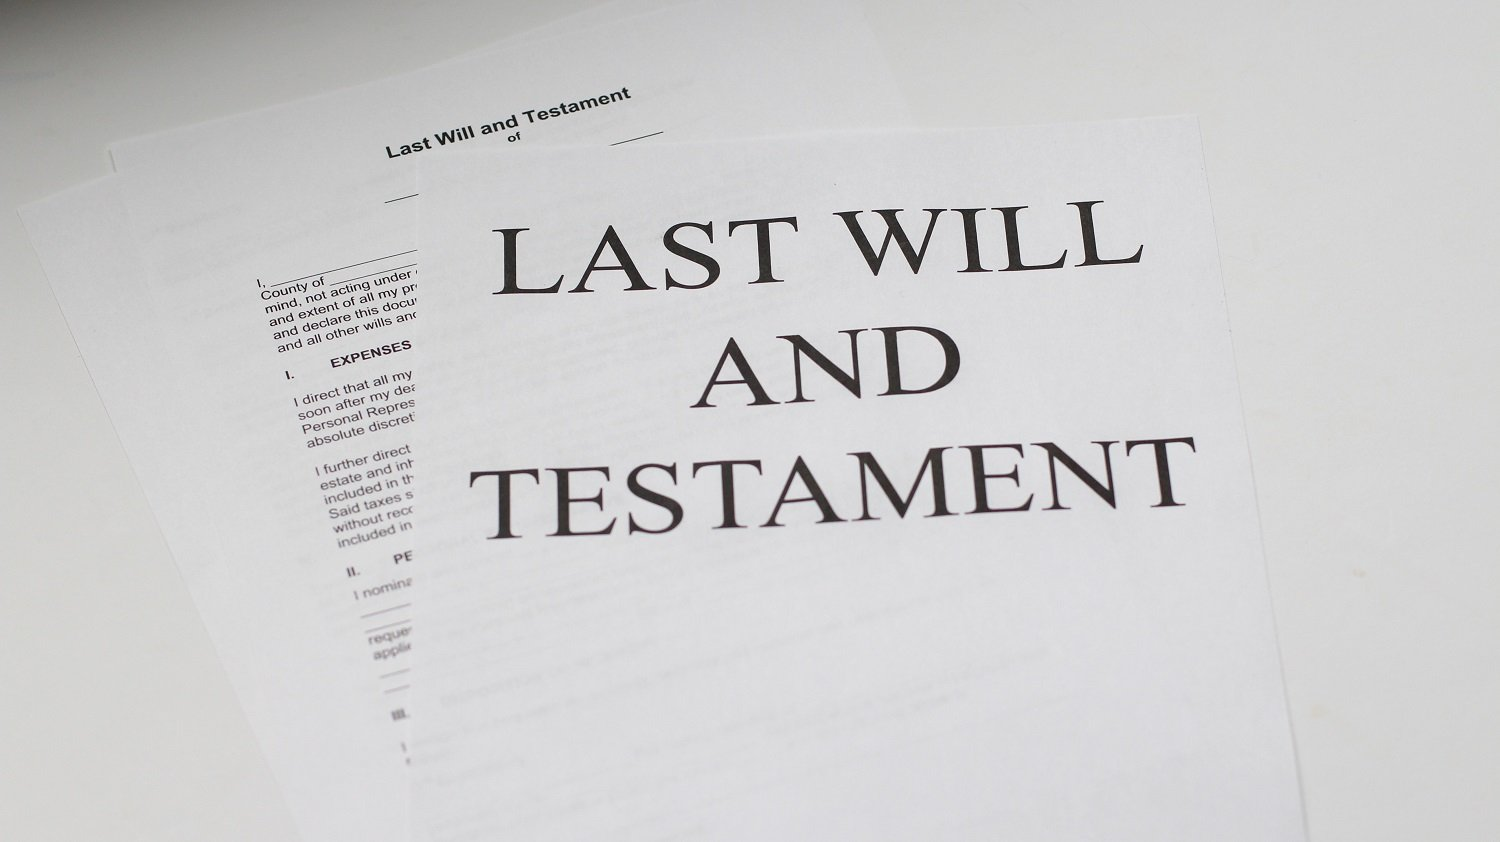 4 Things You Should Include When Writing Your Will